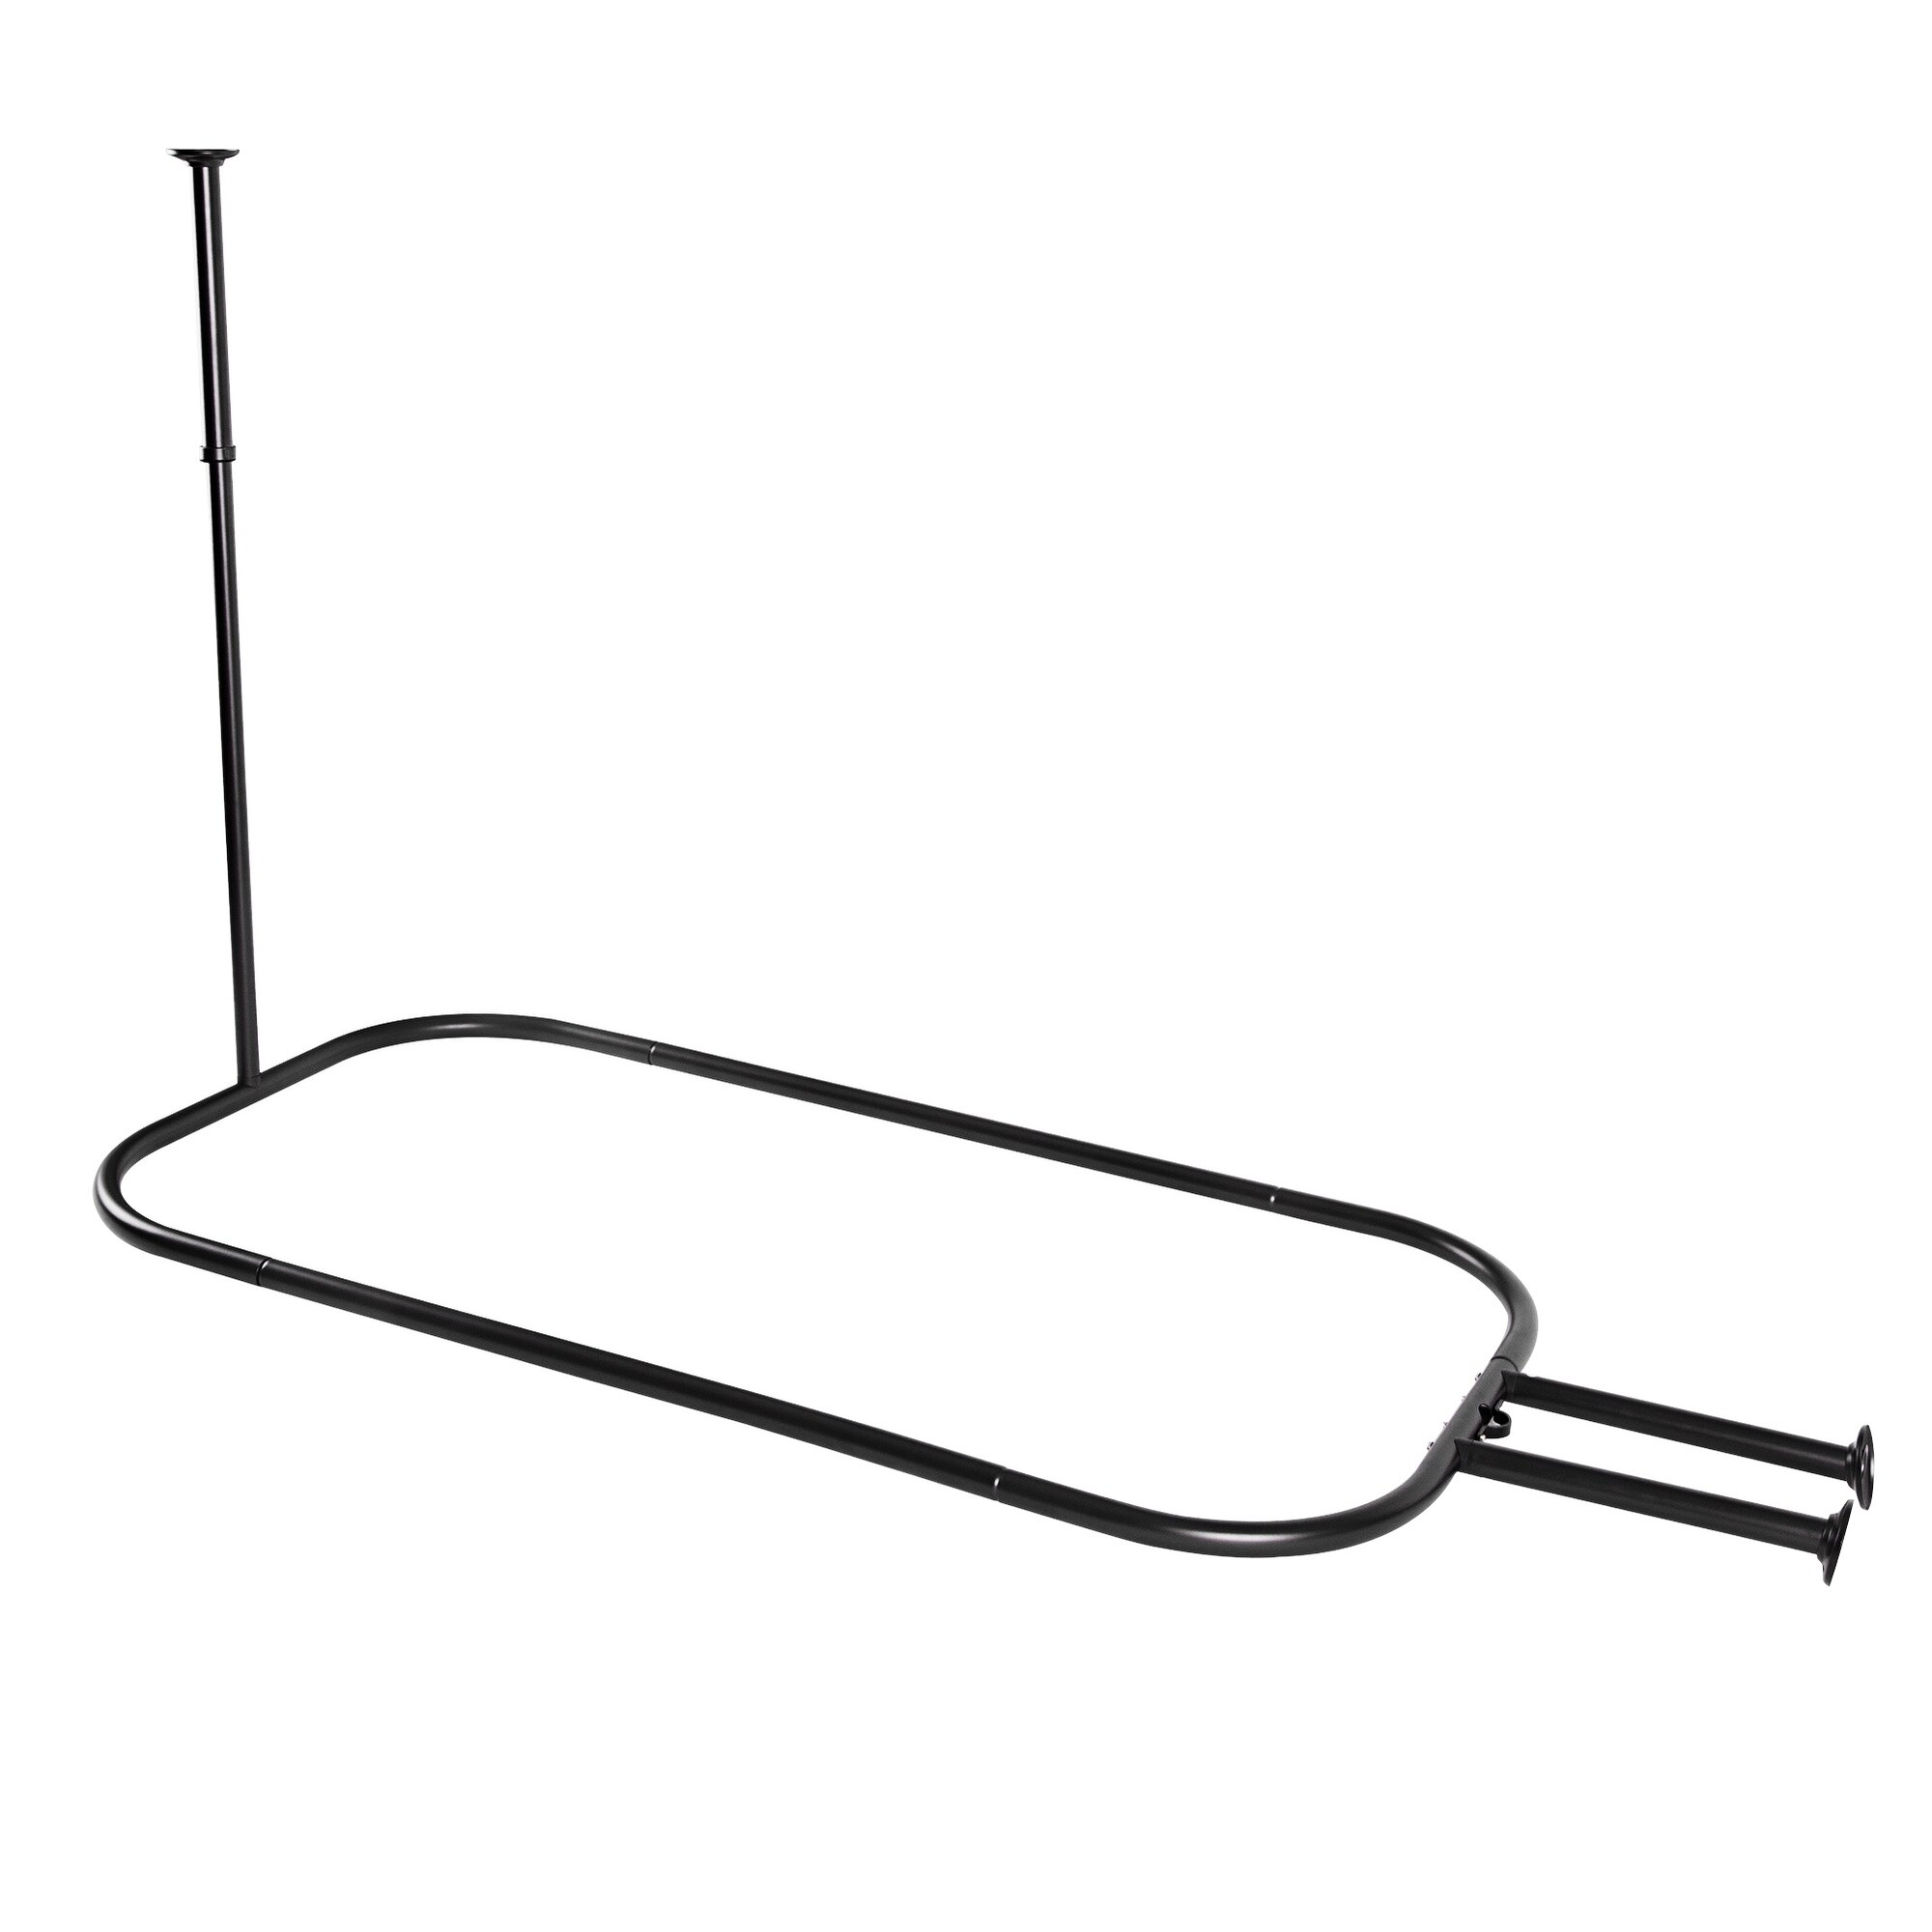 Utopia Alley Hoop Shower Rod For Clawfoot Tub Black